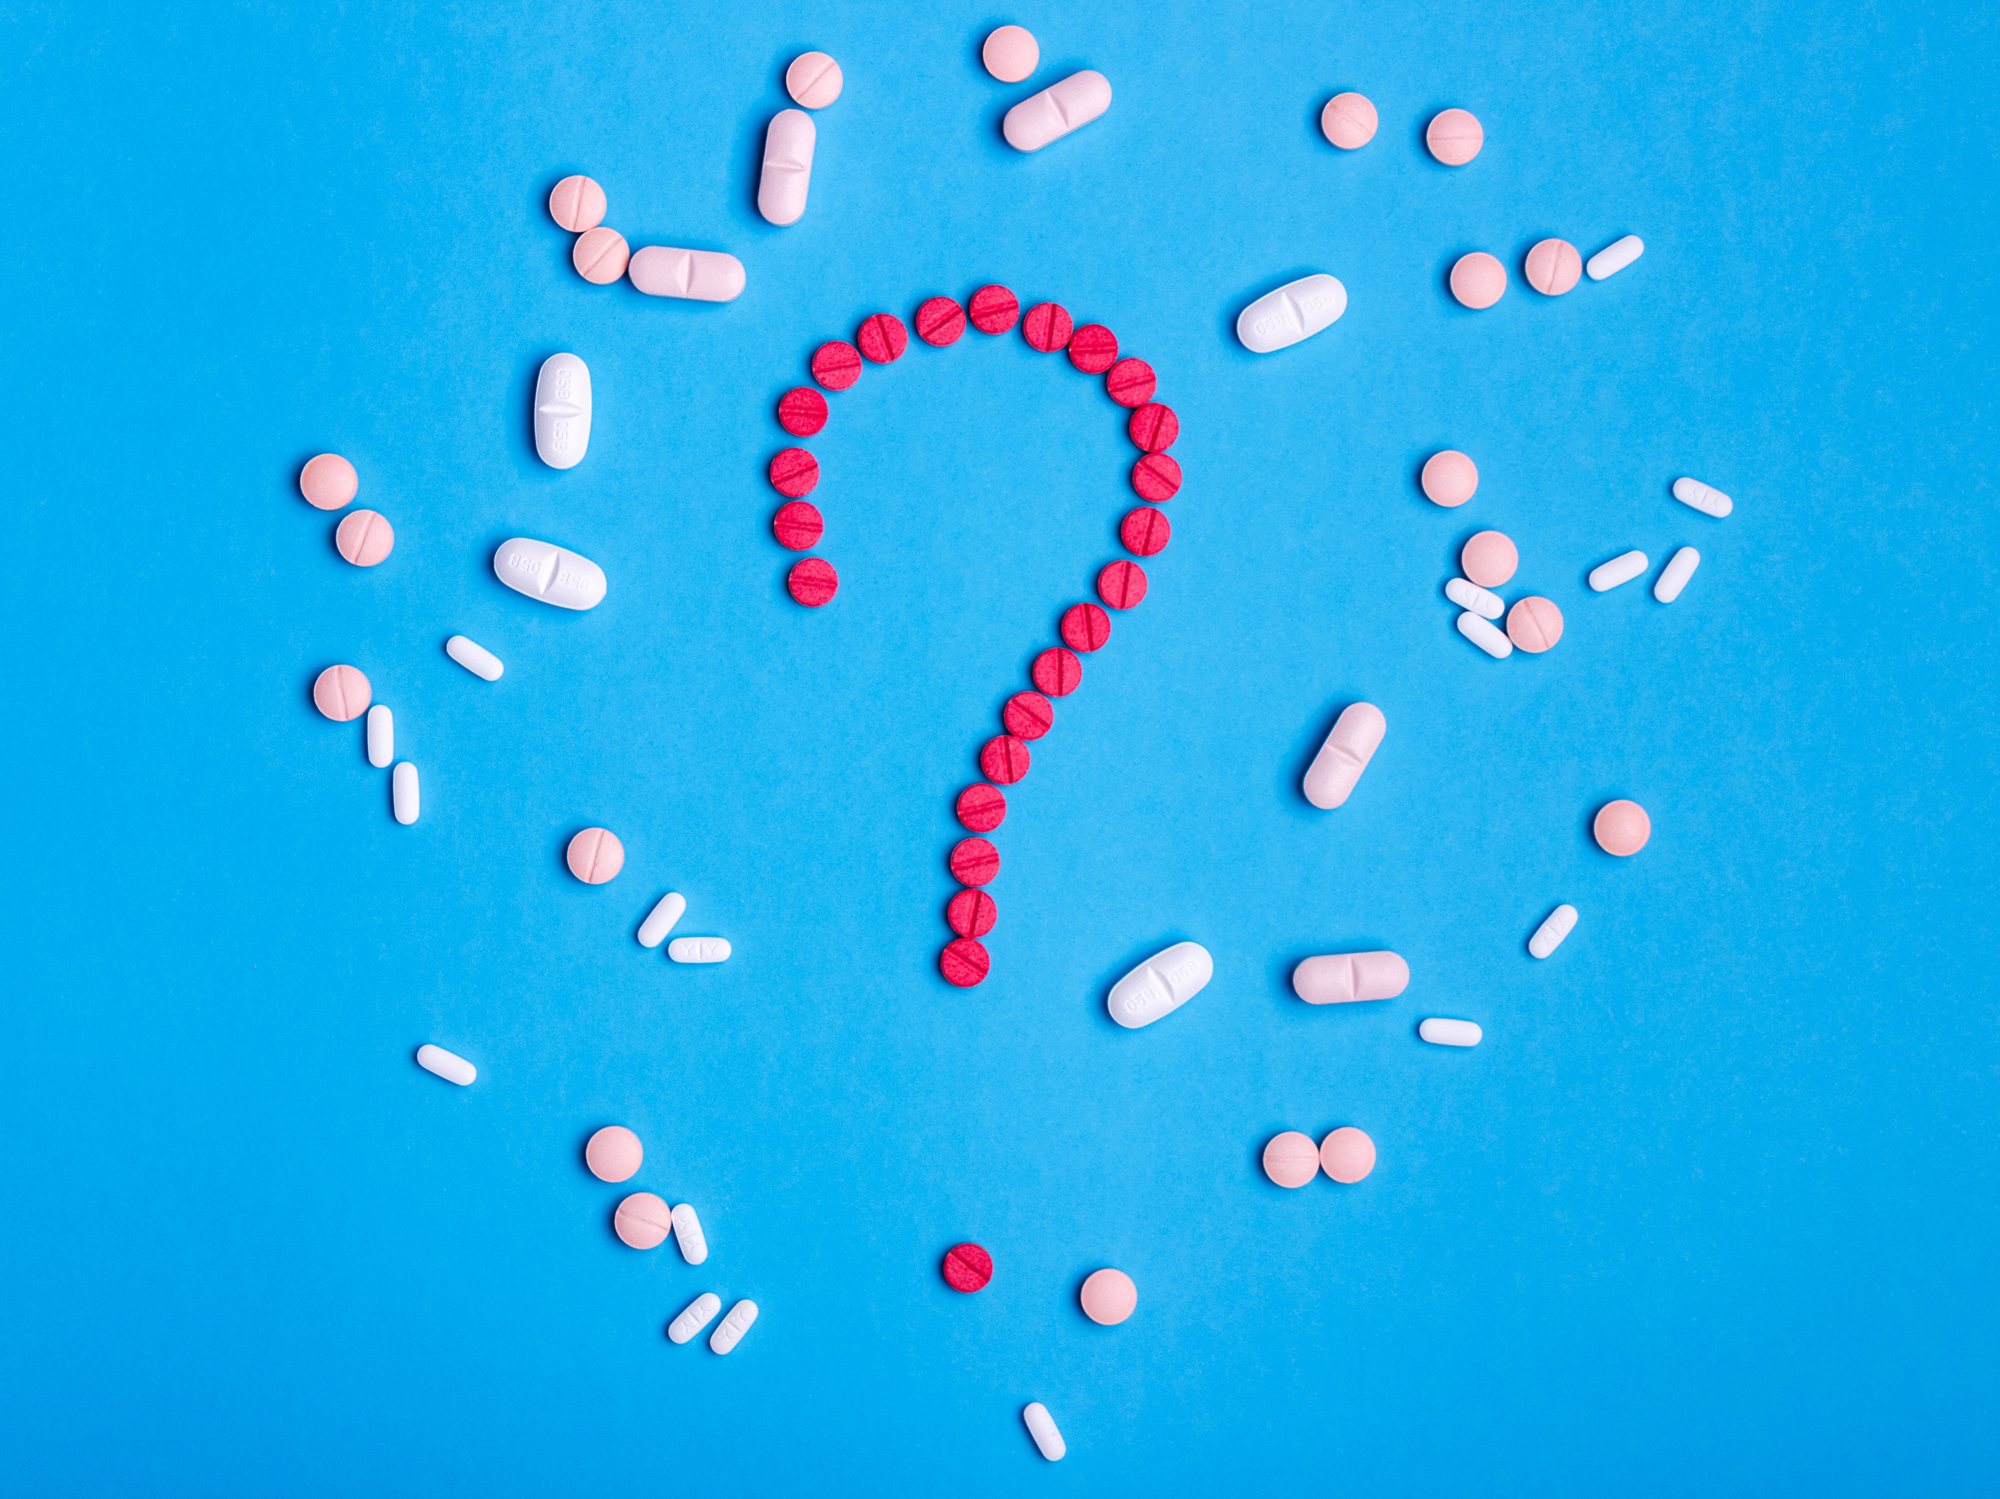 Question mark made from red medicine pills on a blue background